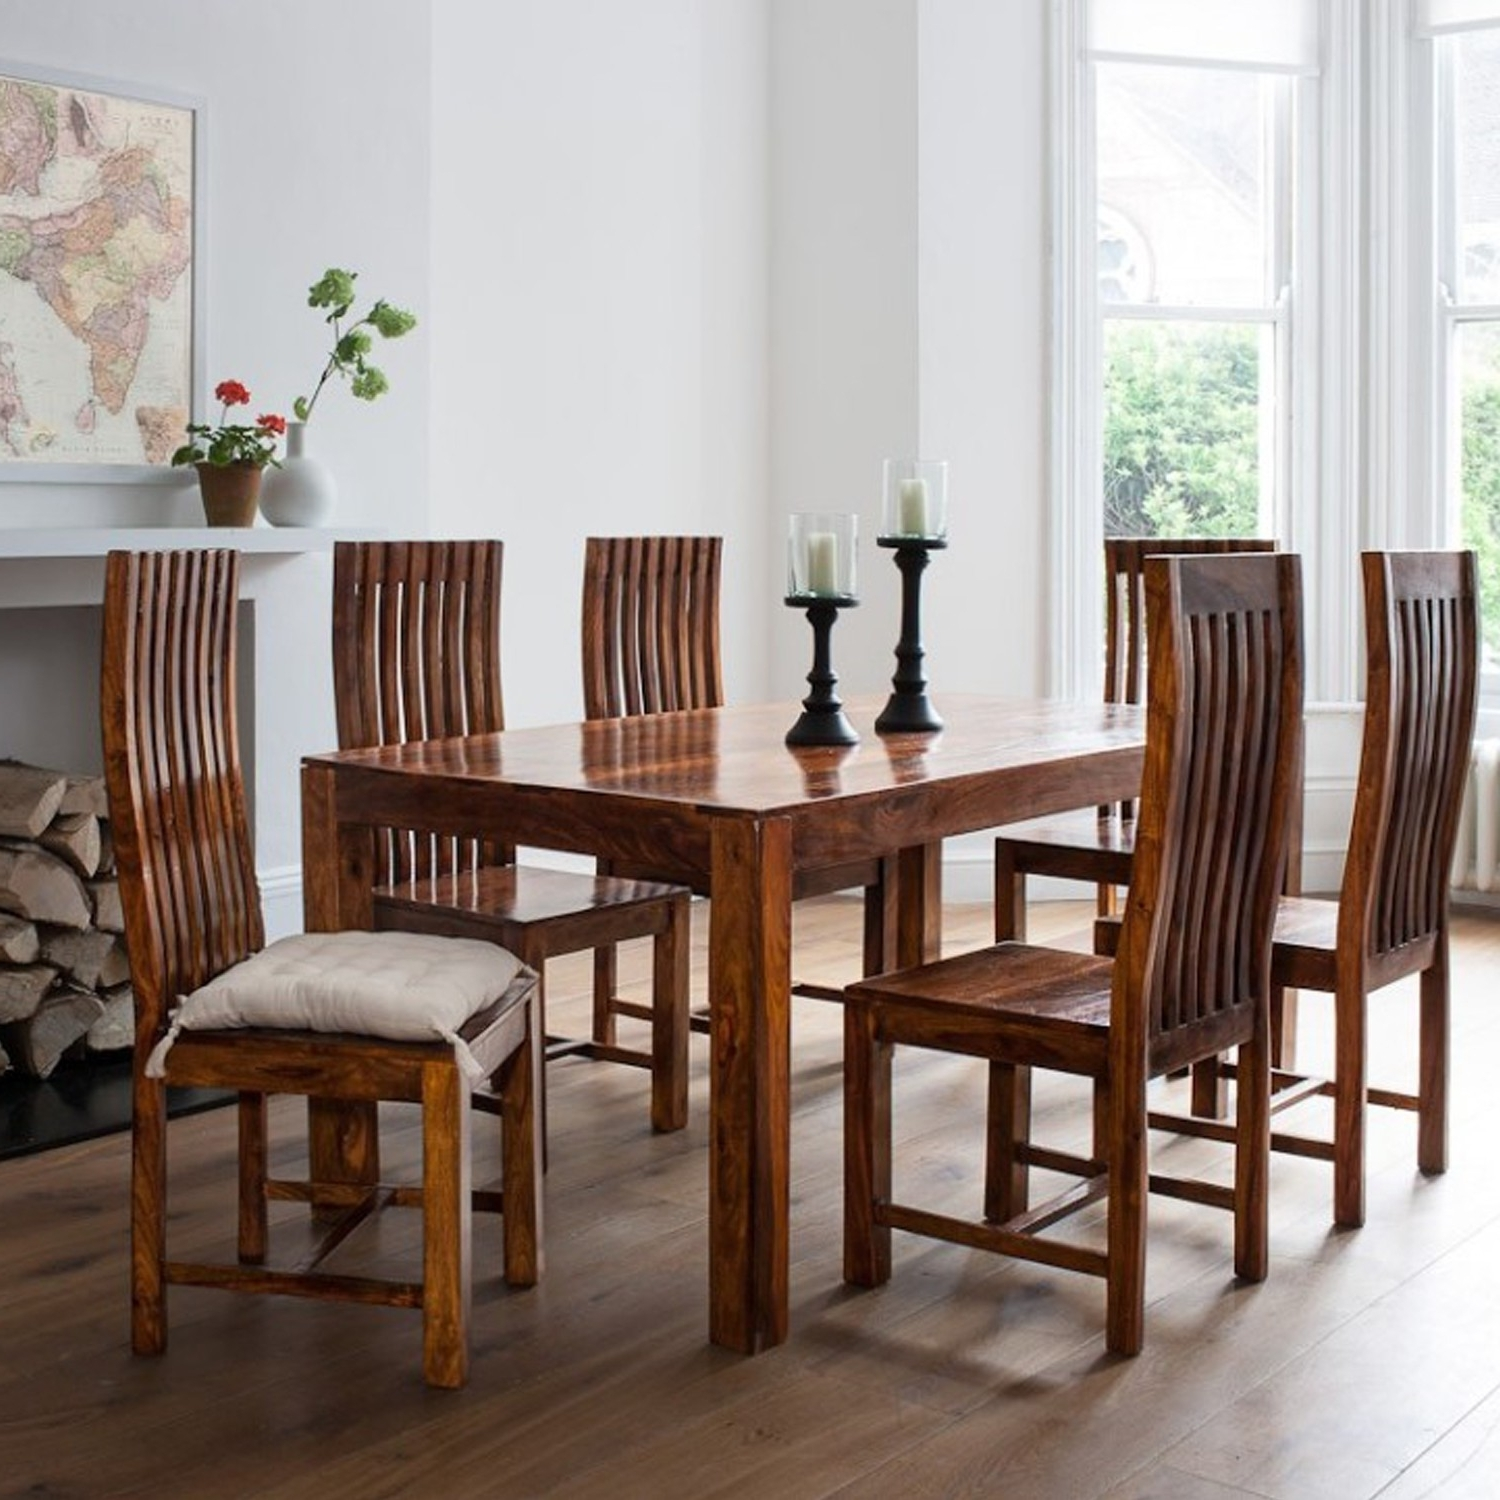 Most Recent Sheesham Dining Tables 8 Chairs Intended For Thar Art Gallery::sheesham Wood Dinning Table 6 Chairs,sheesham Wood (View 11 of 25)